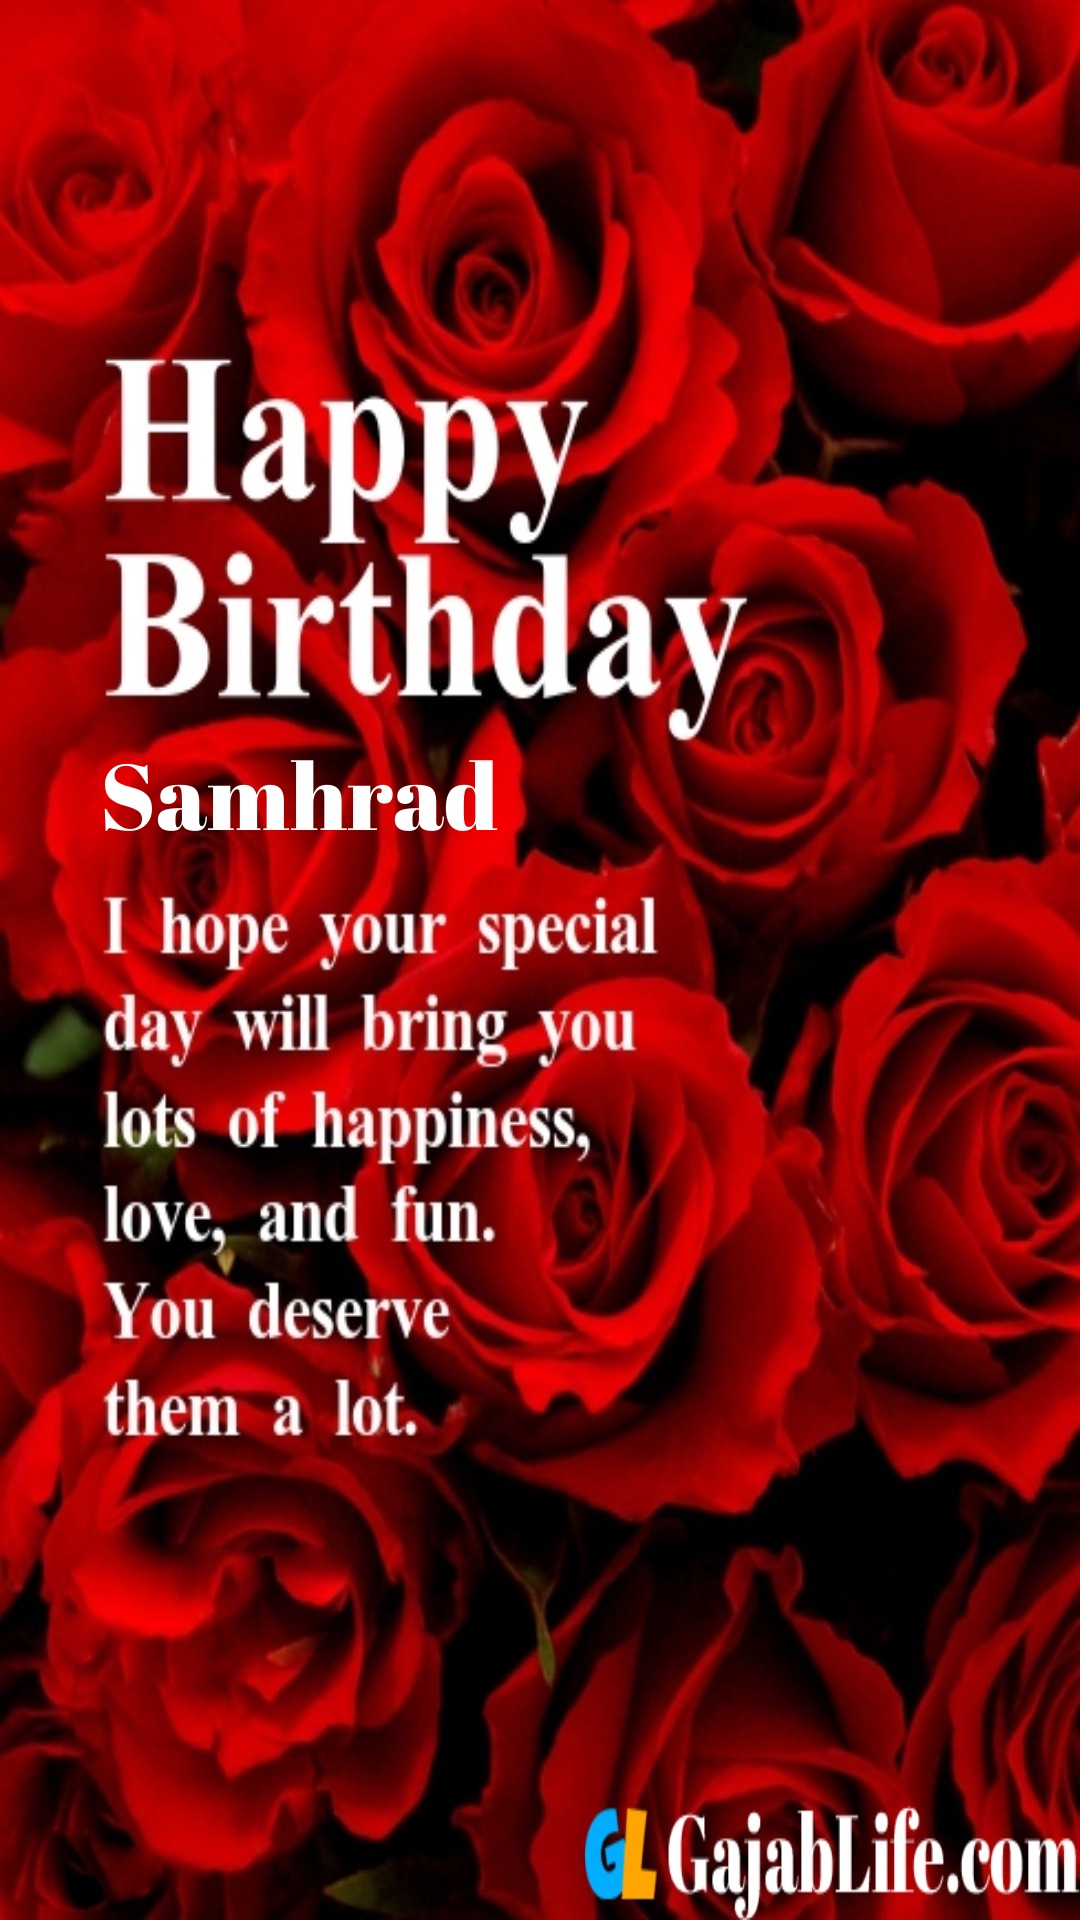 Samhrad birthday greeting card with rose & love